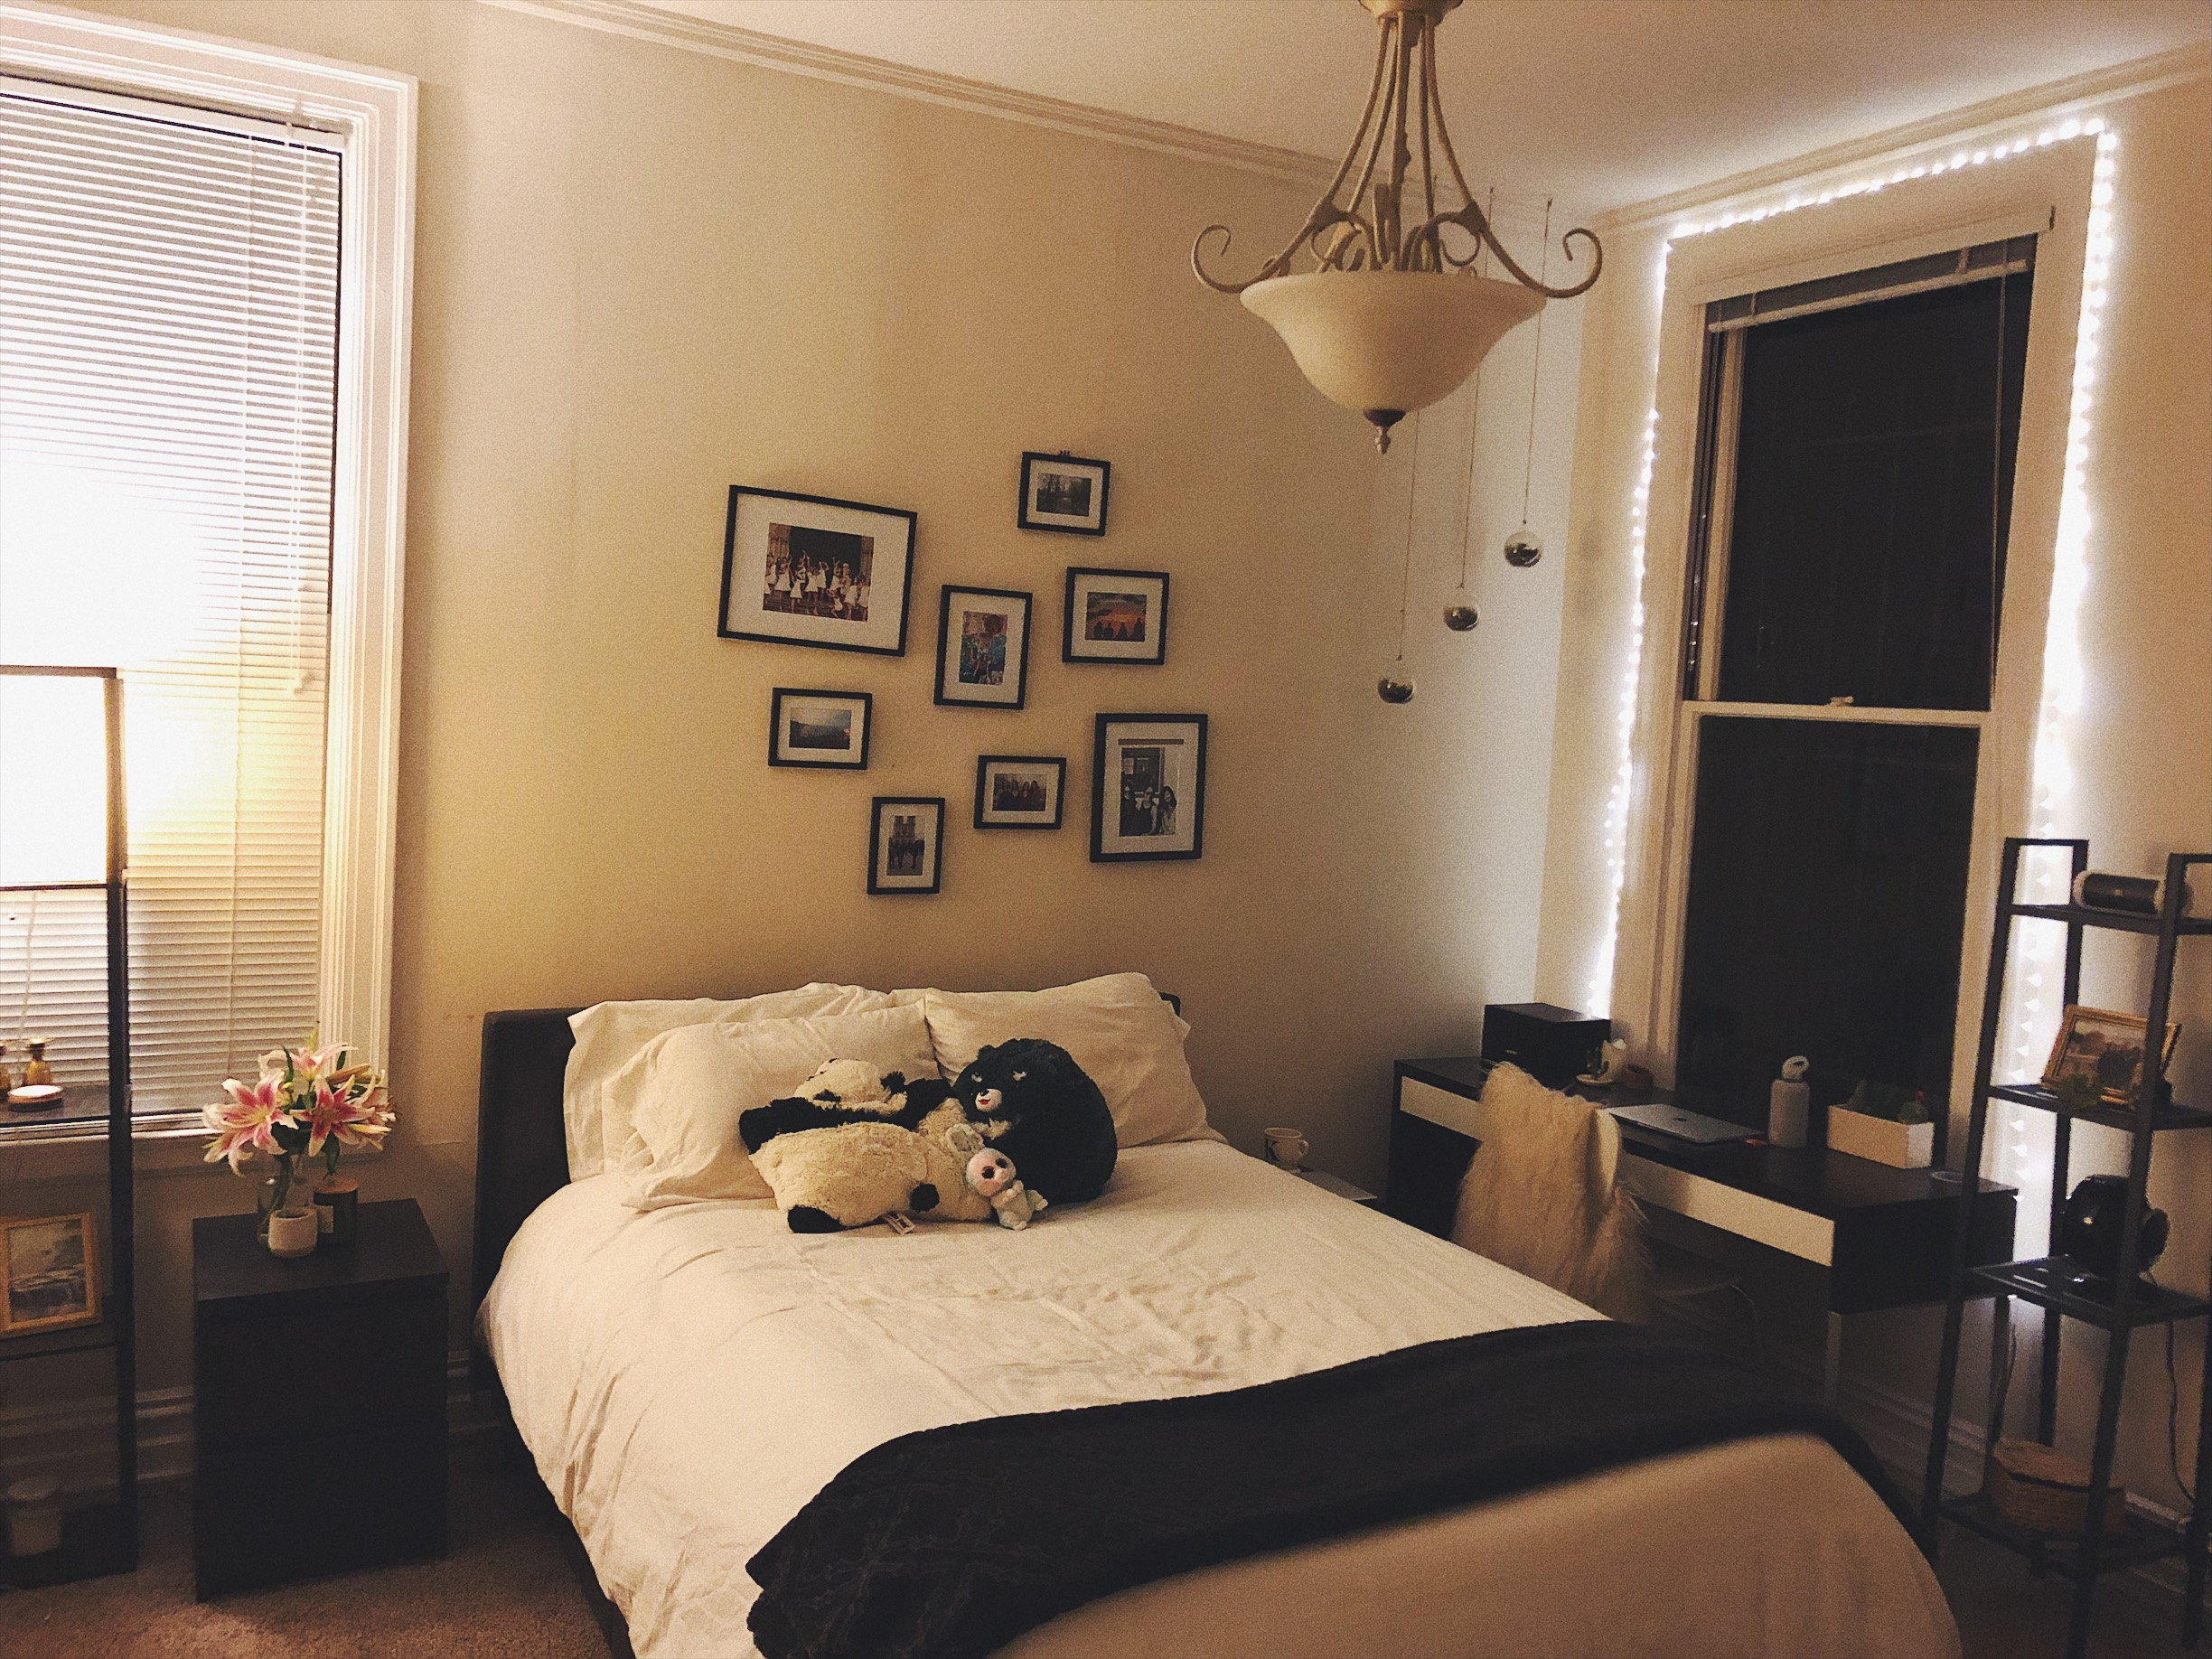 I've invested in making the bedroom my happiest place :)